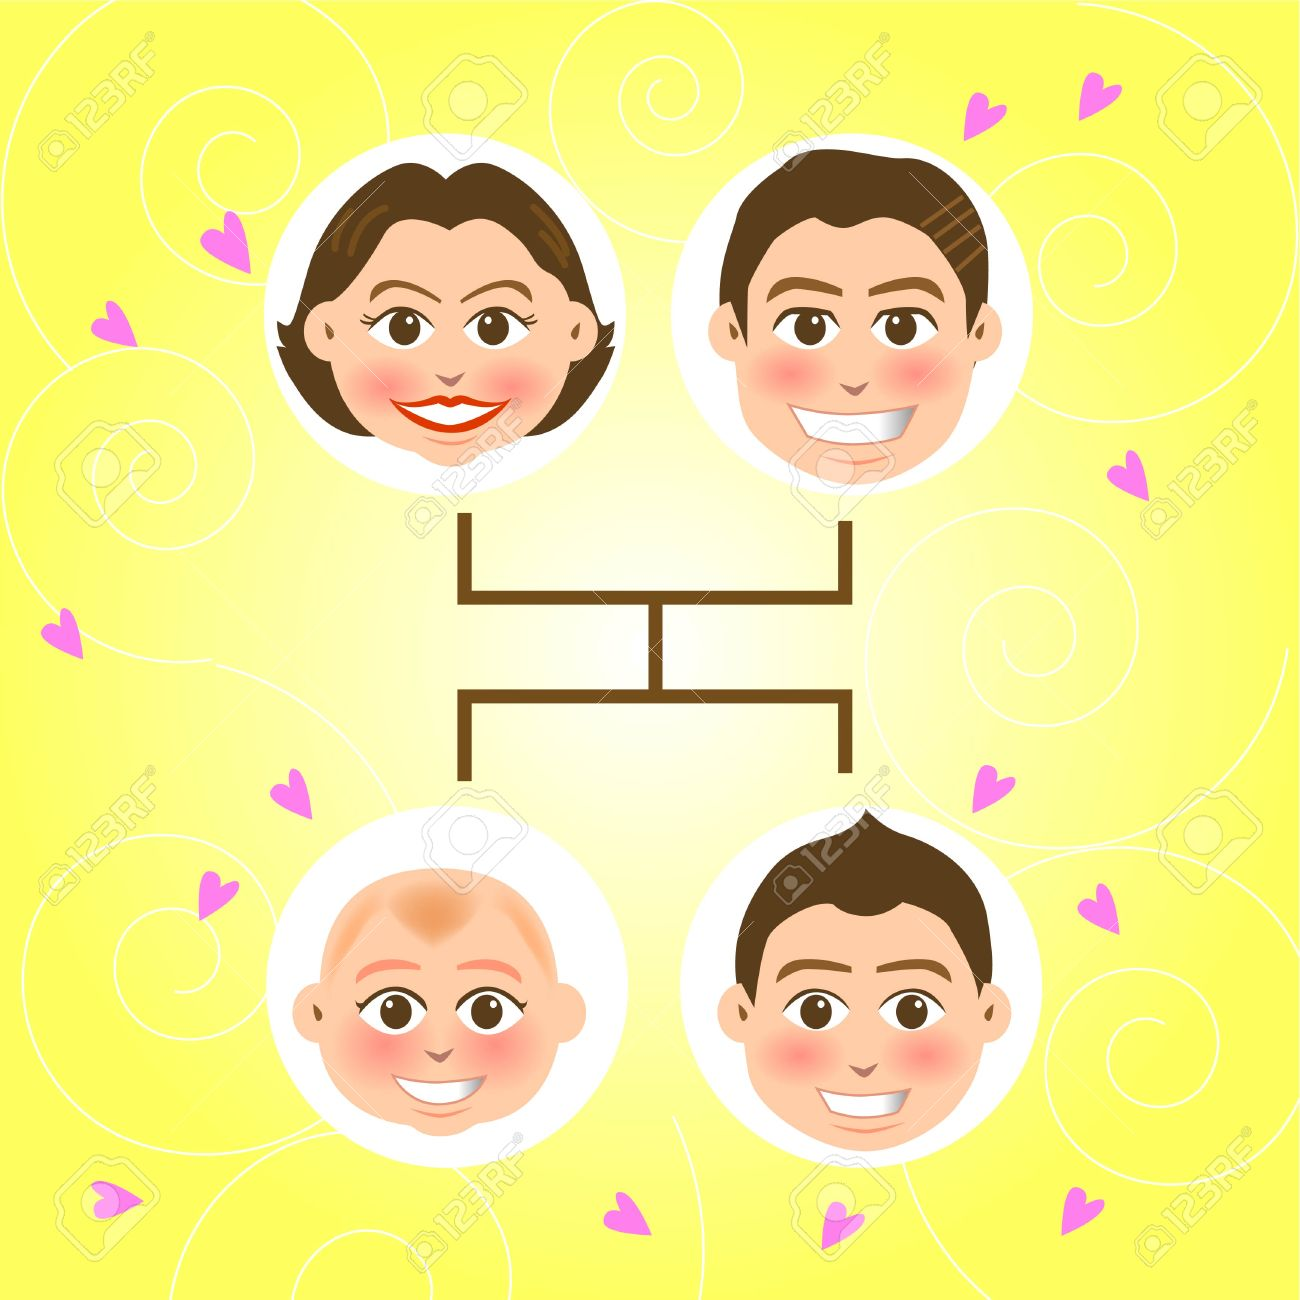 vector illustration for a relationship for a family tree, father, mother and sons Stock Vector - 2602765